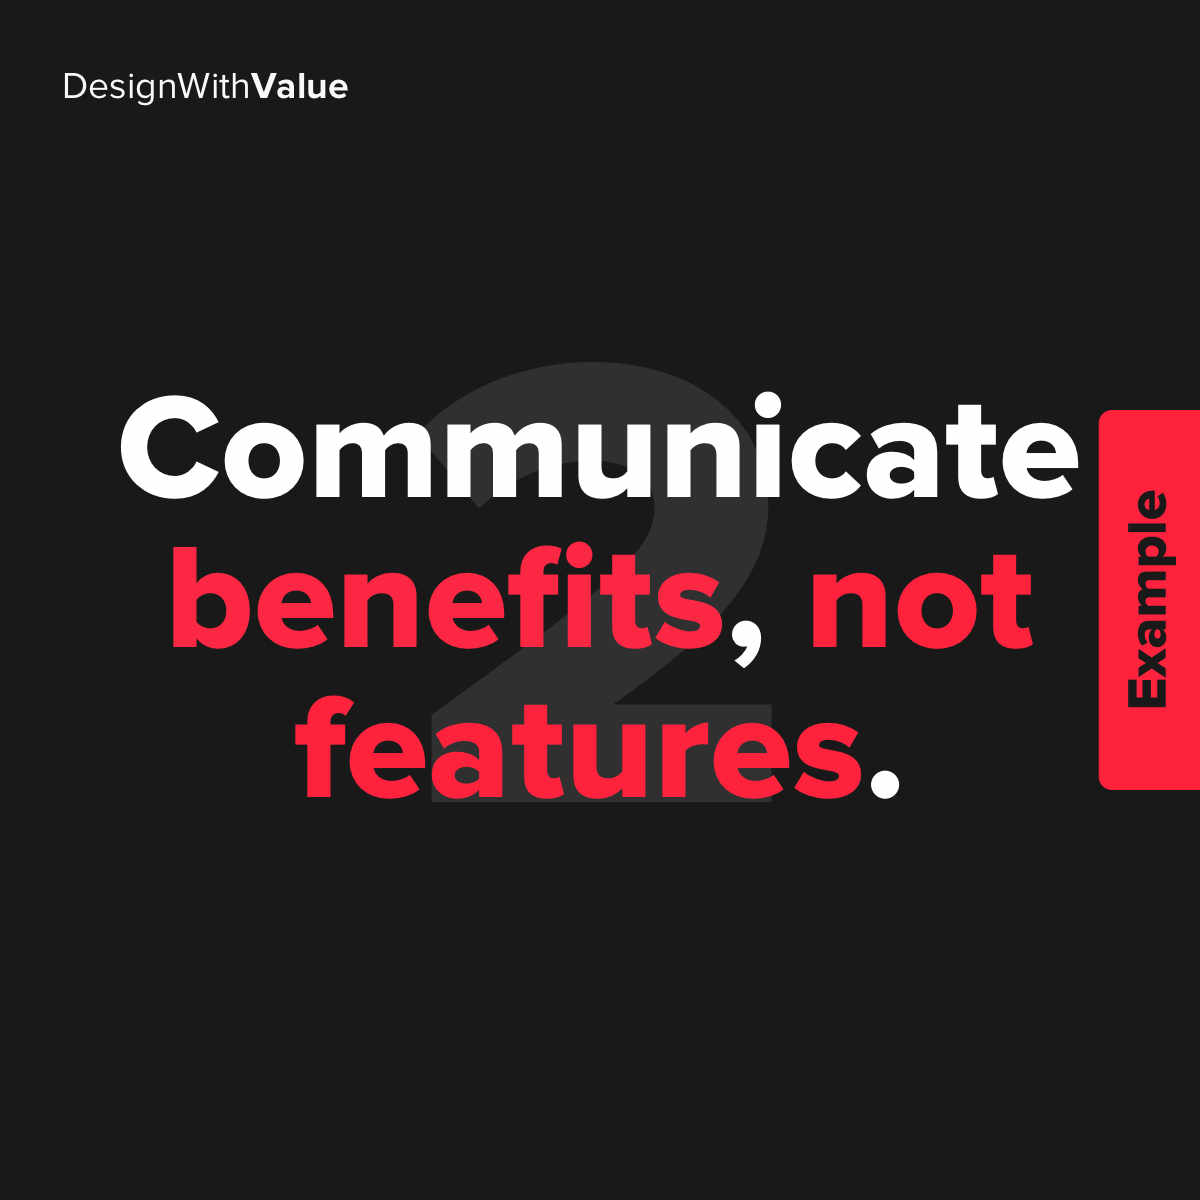 2. Communicate benefits, not features.